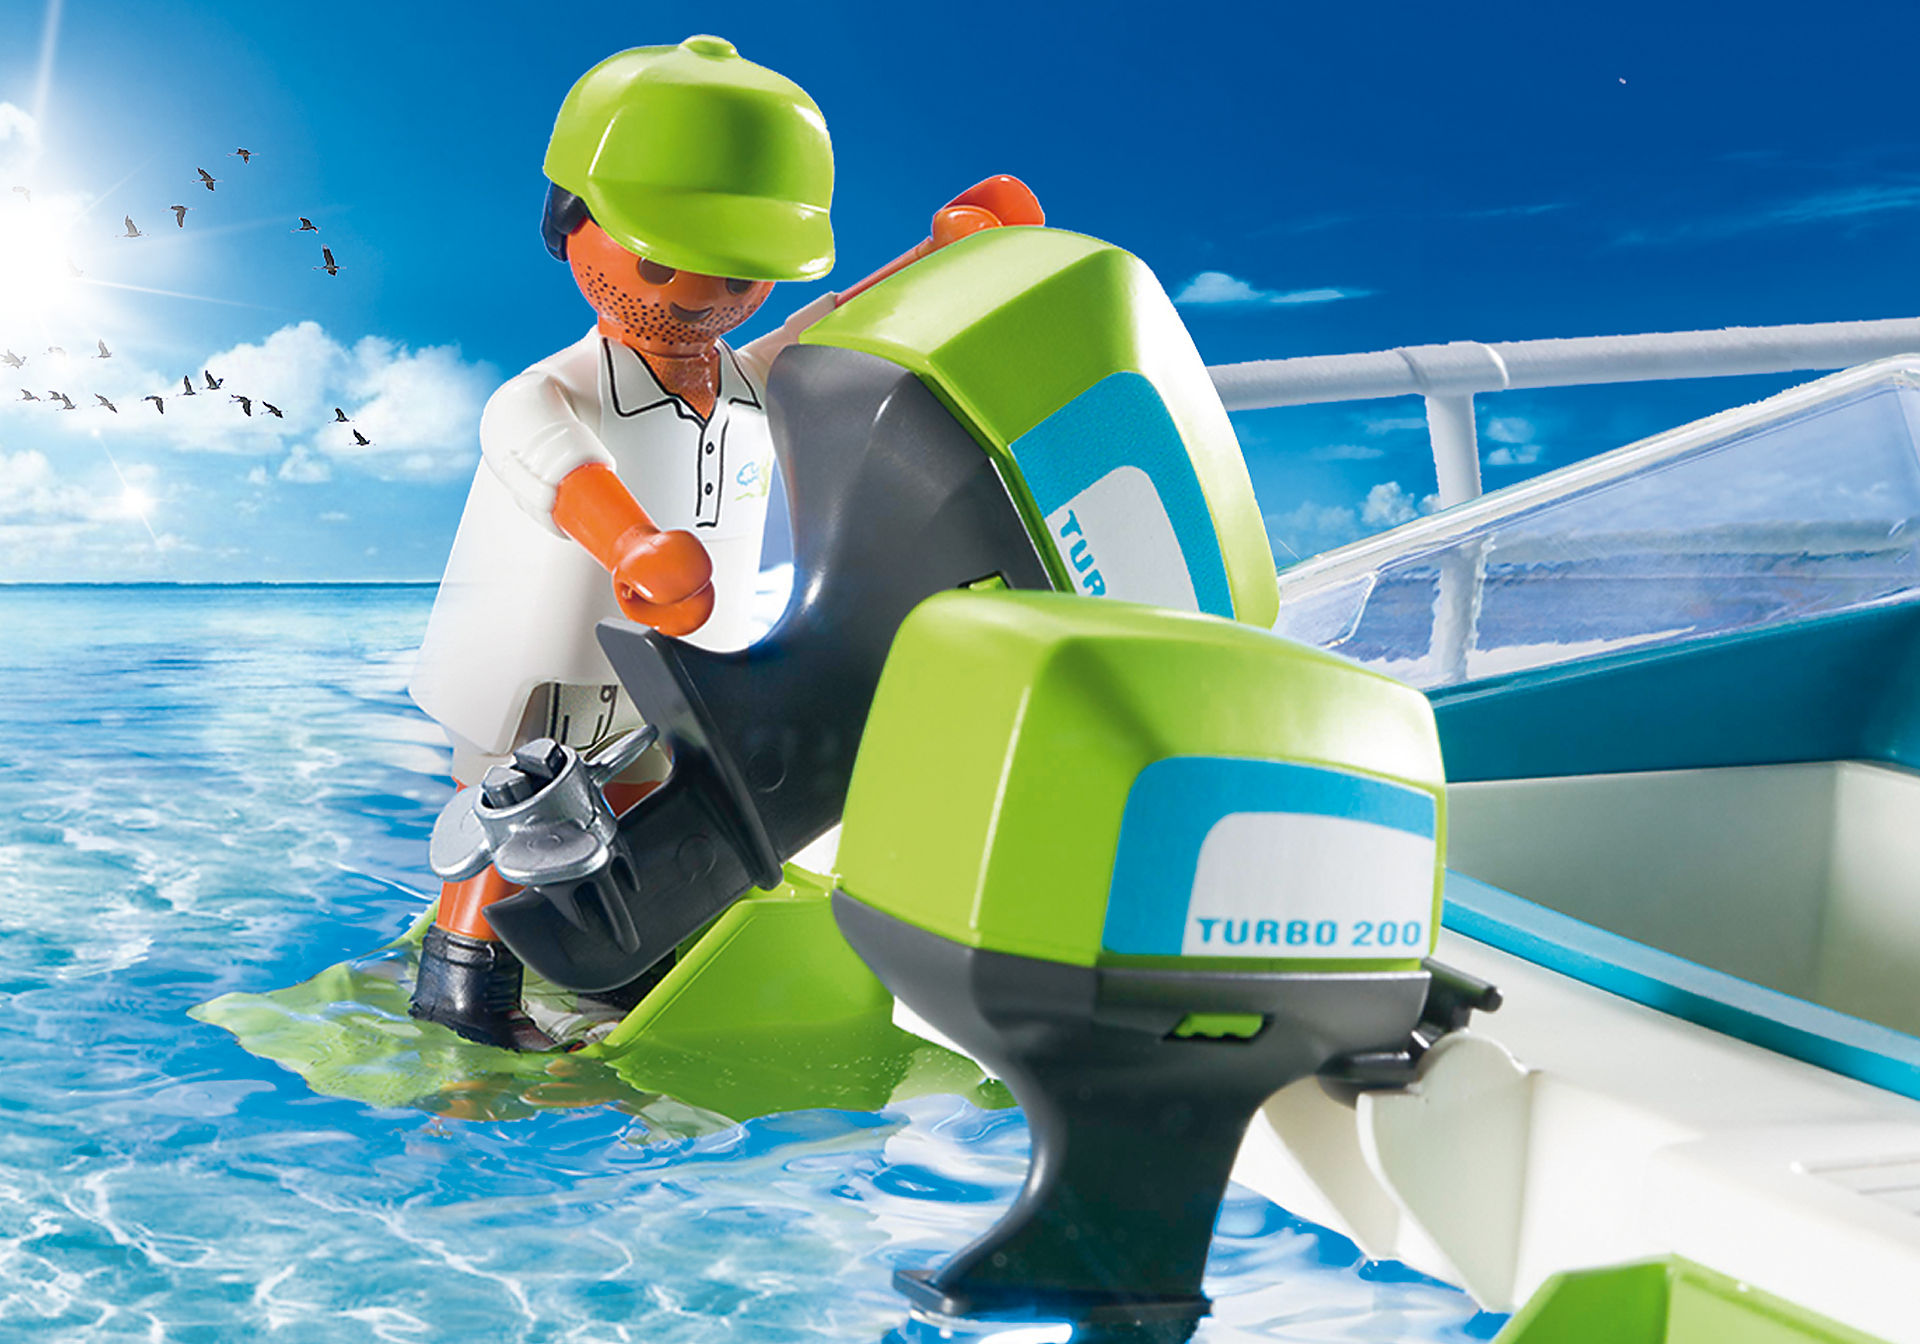 http://media.playmobil.com/i/playmobil/9233_product_extra1/Glass-Bottom Boat with Underwater Motor